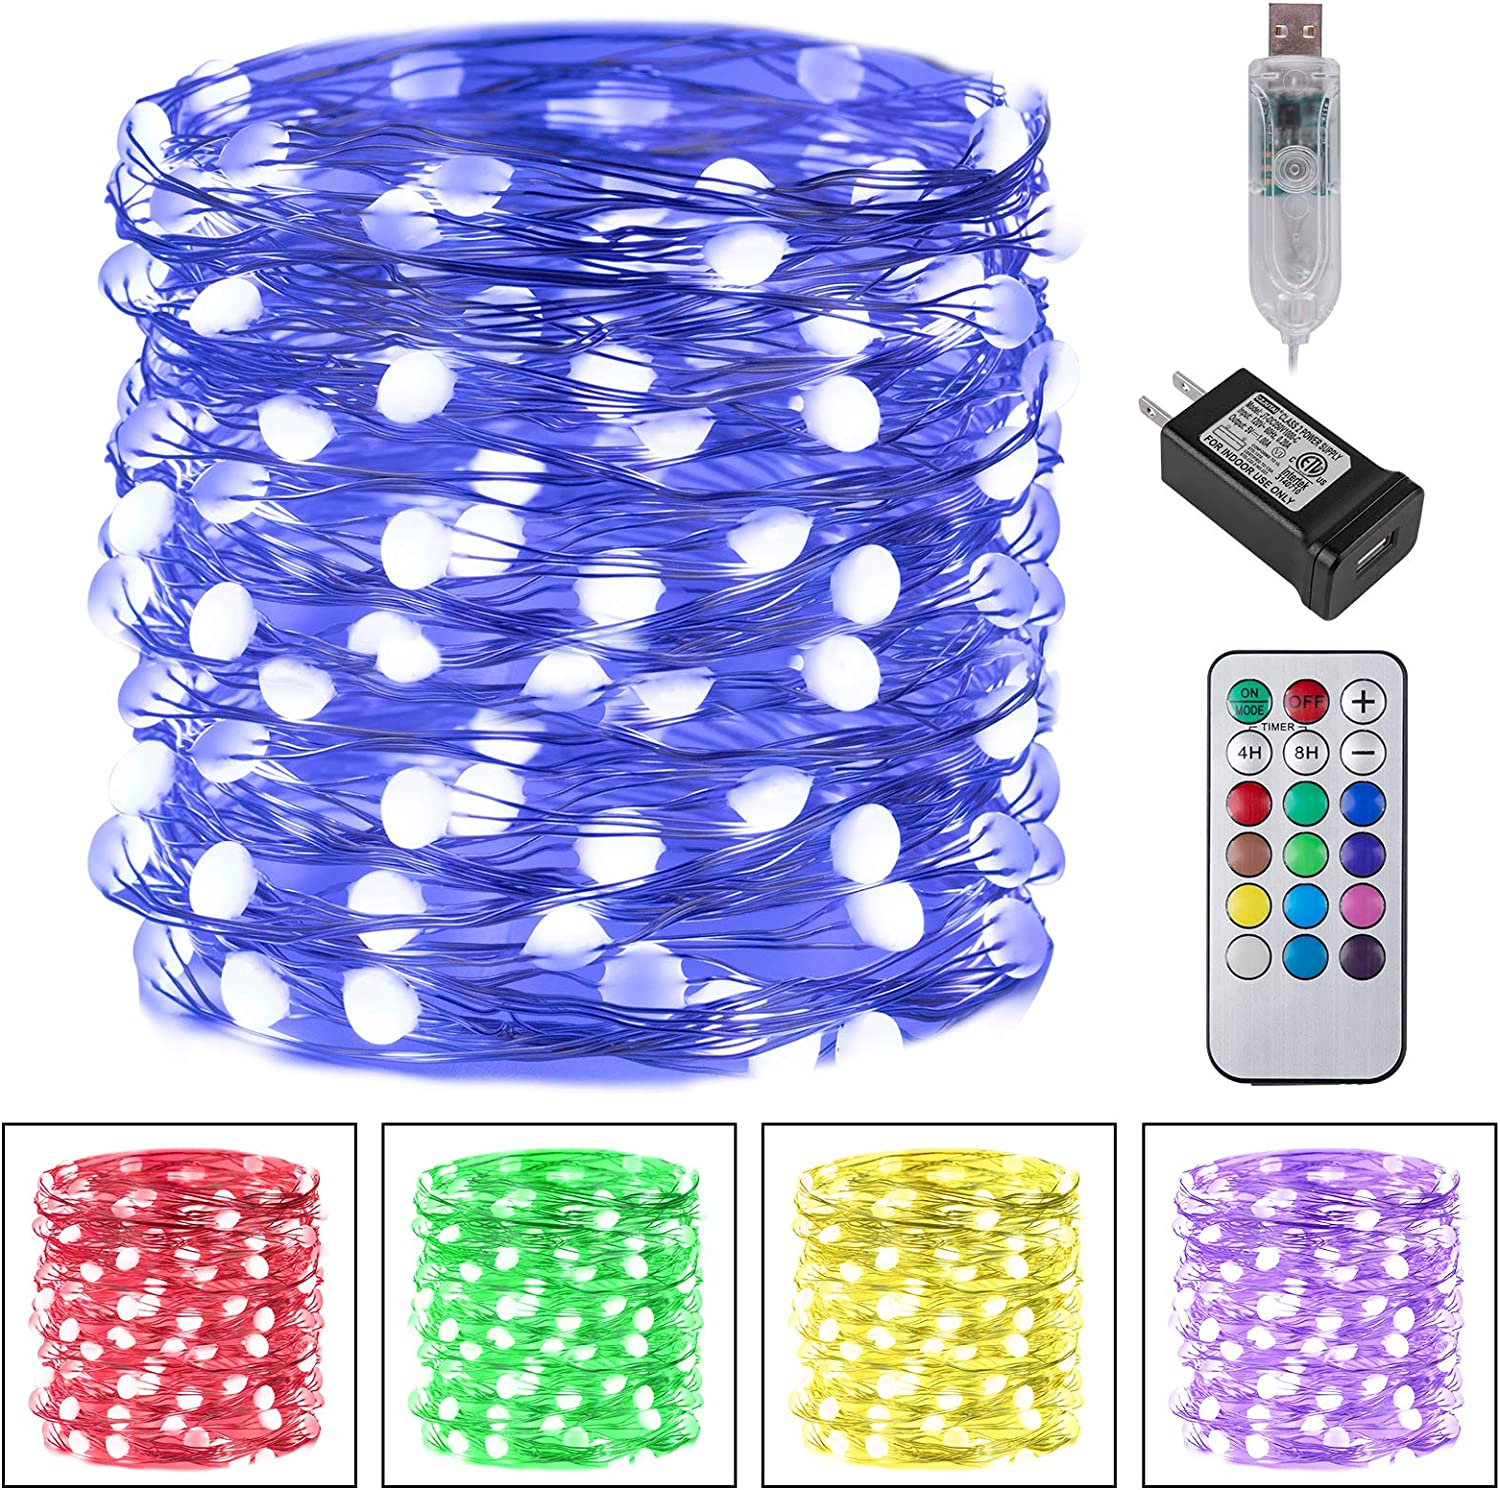 Color Changing Fairy String Lights 33Feet 100 Led Waterproof Firefly Twinkle Christmas Lights with Usb Plug And Remote And Multicolor Light Modes for Craft, Bedroom, Wedding, Holiday Lights Decoration